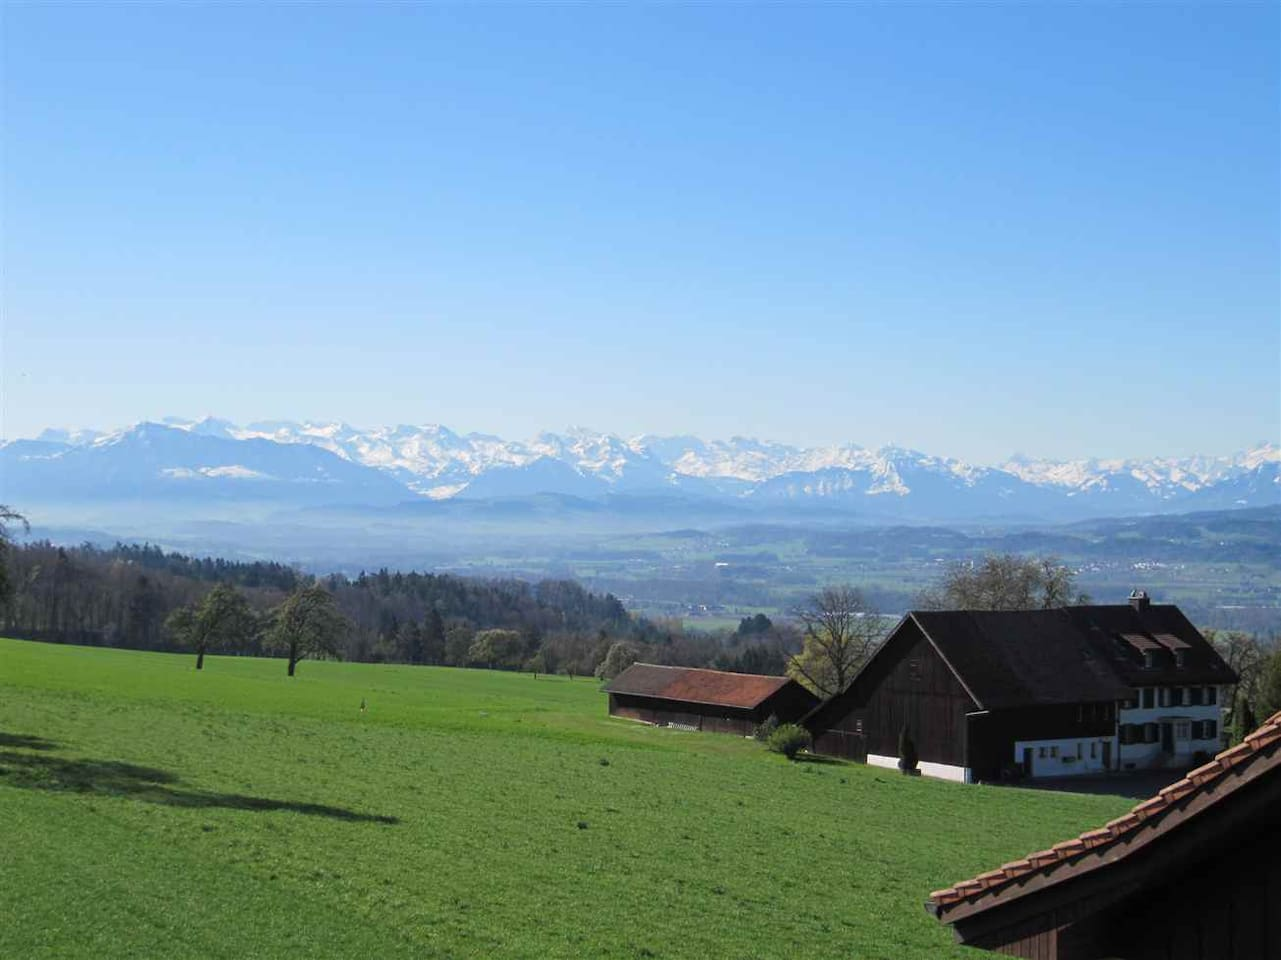 The Swiss Alps - our view from Oberwil-Lieli.